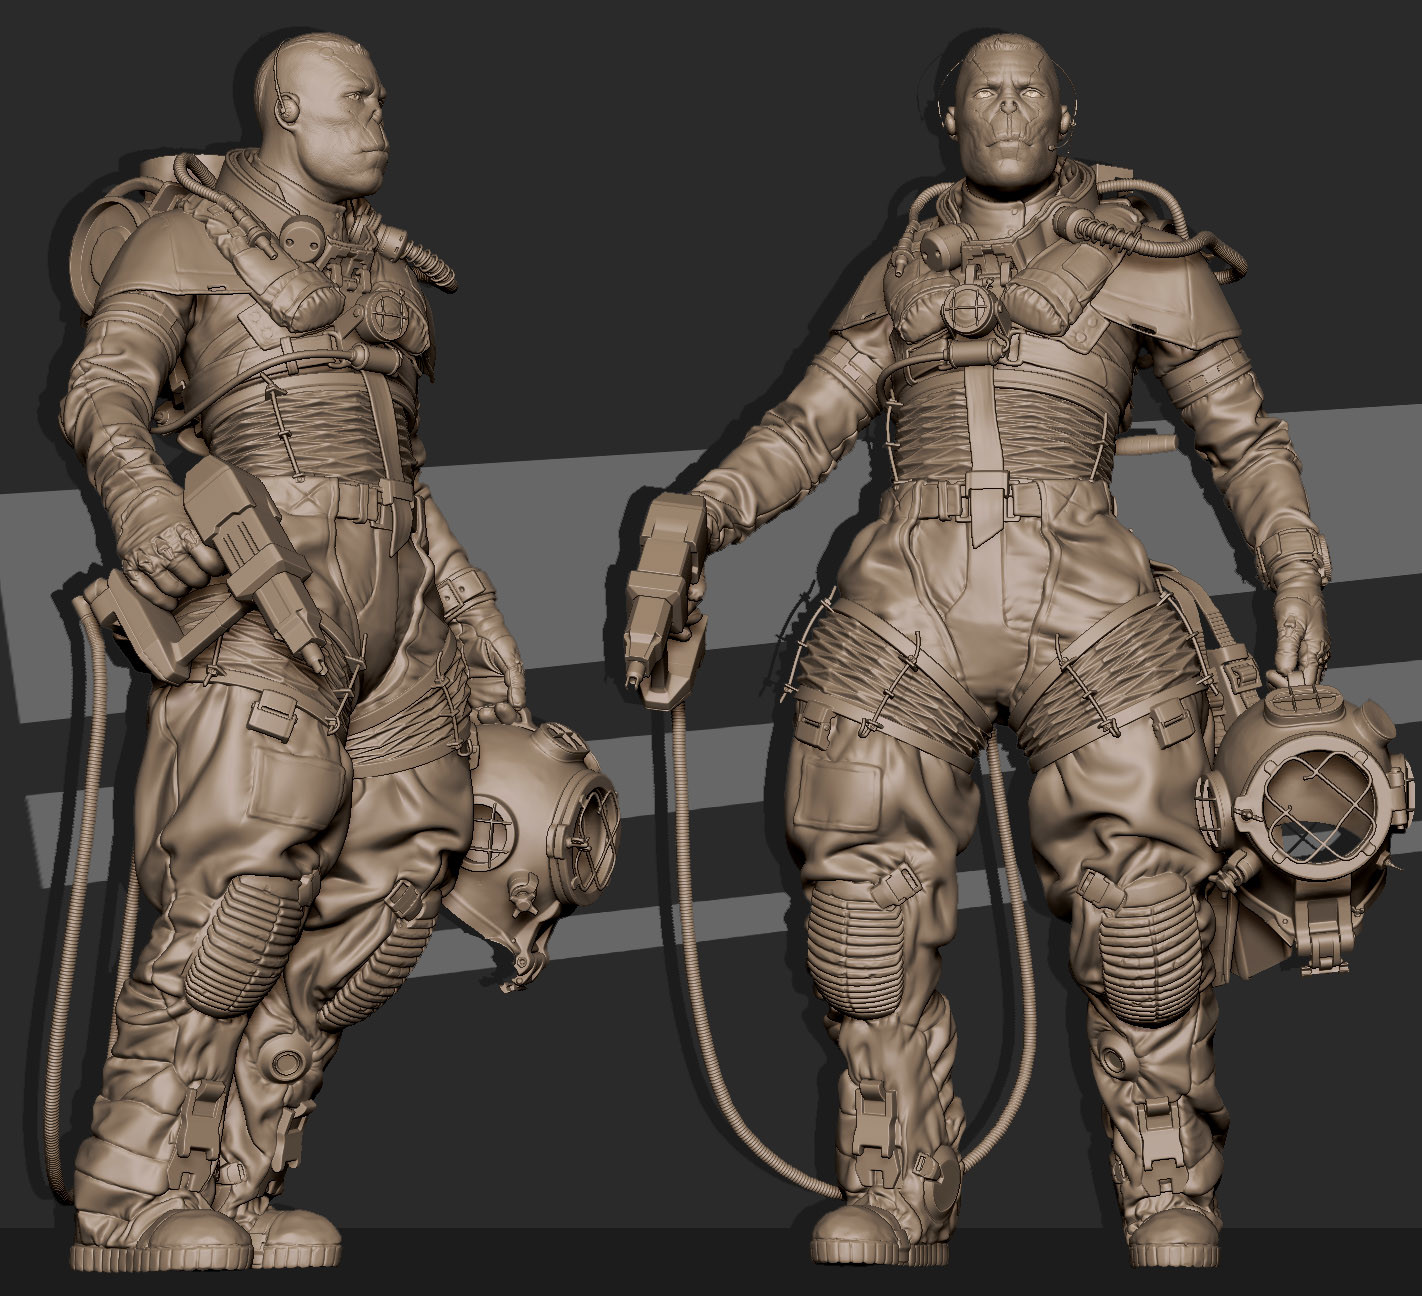 2018.05.10  My take on sci-fi engineer-diver character for Beneath the Waves Challenge.Concept by Giorgio Baroni. 2 -4k texture sets 69k tris